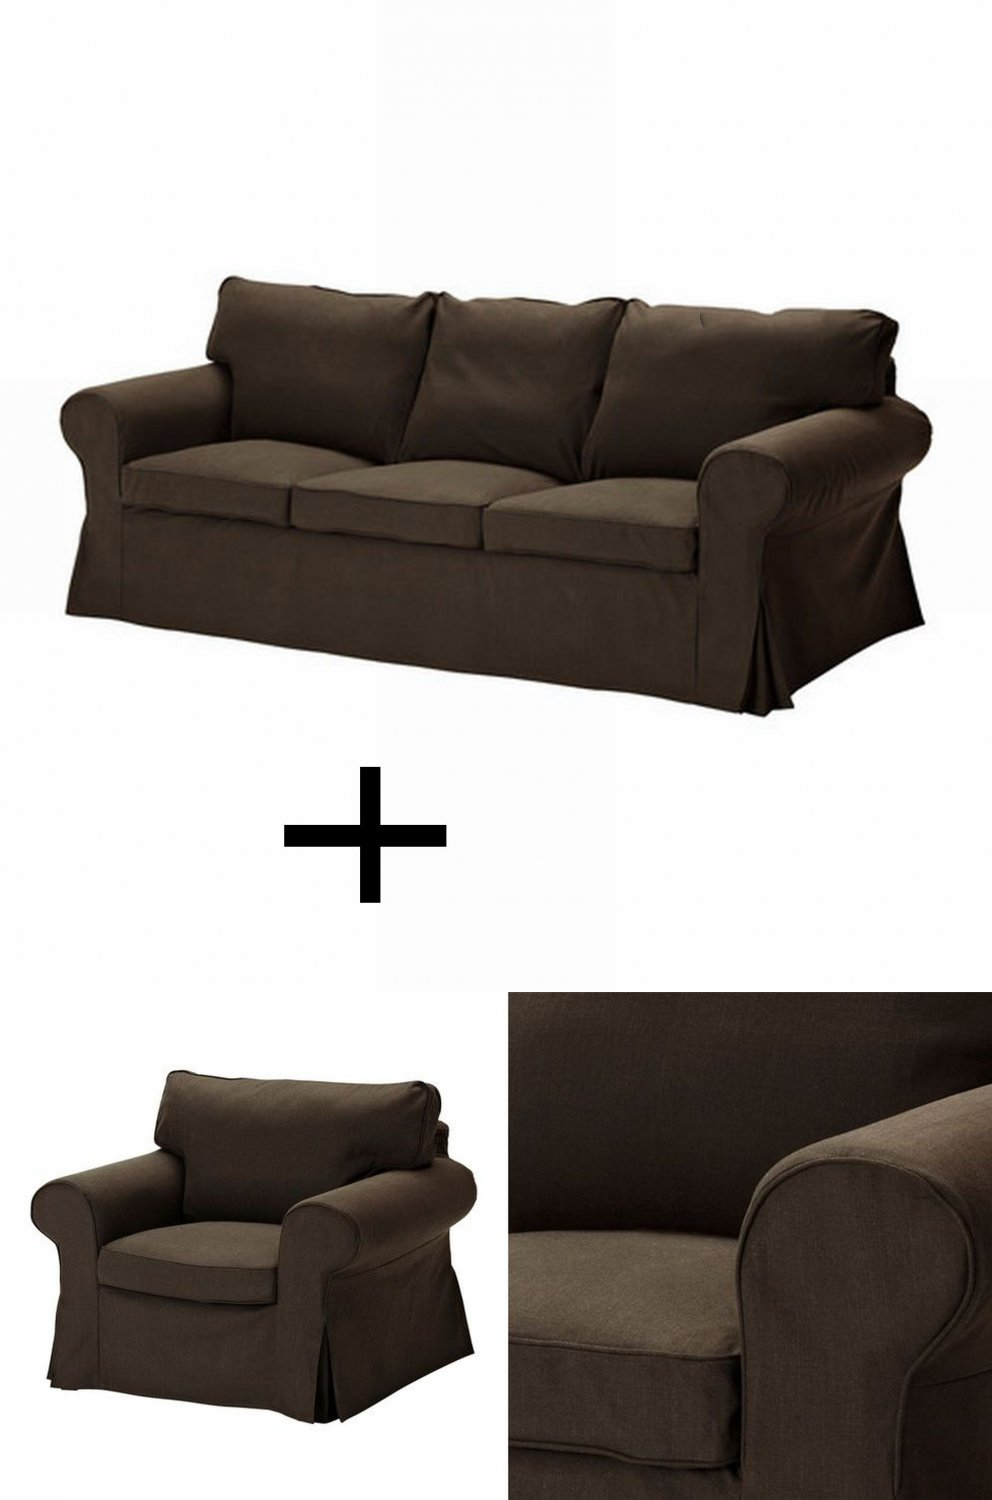 Ikea ektorp 3 seat sofa and armchair slipcover set covers for Ikea sofa set